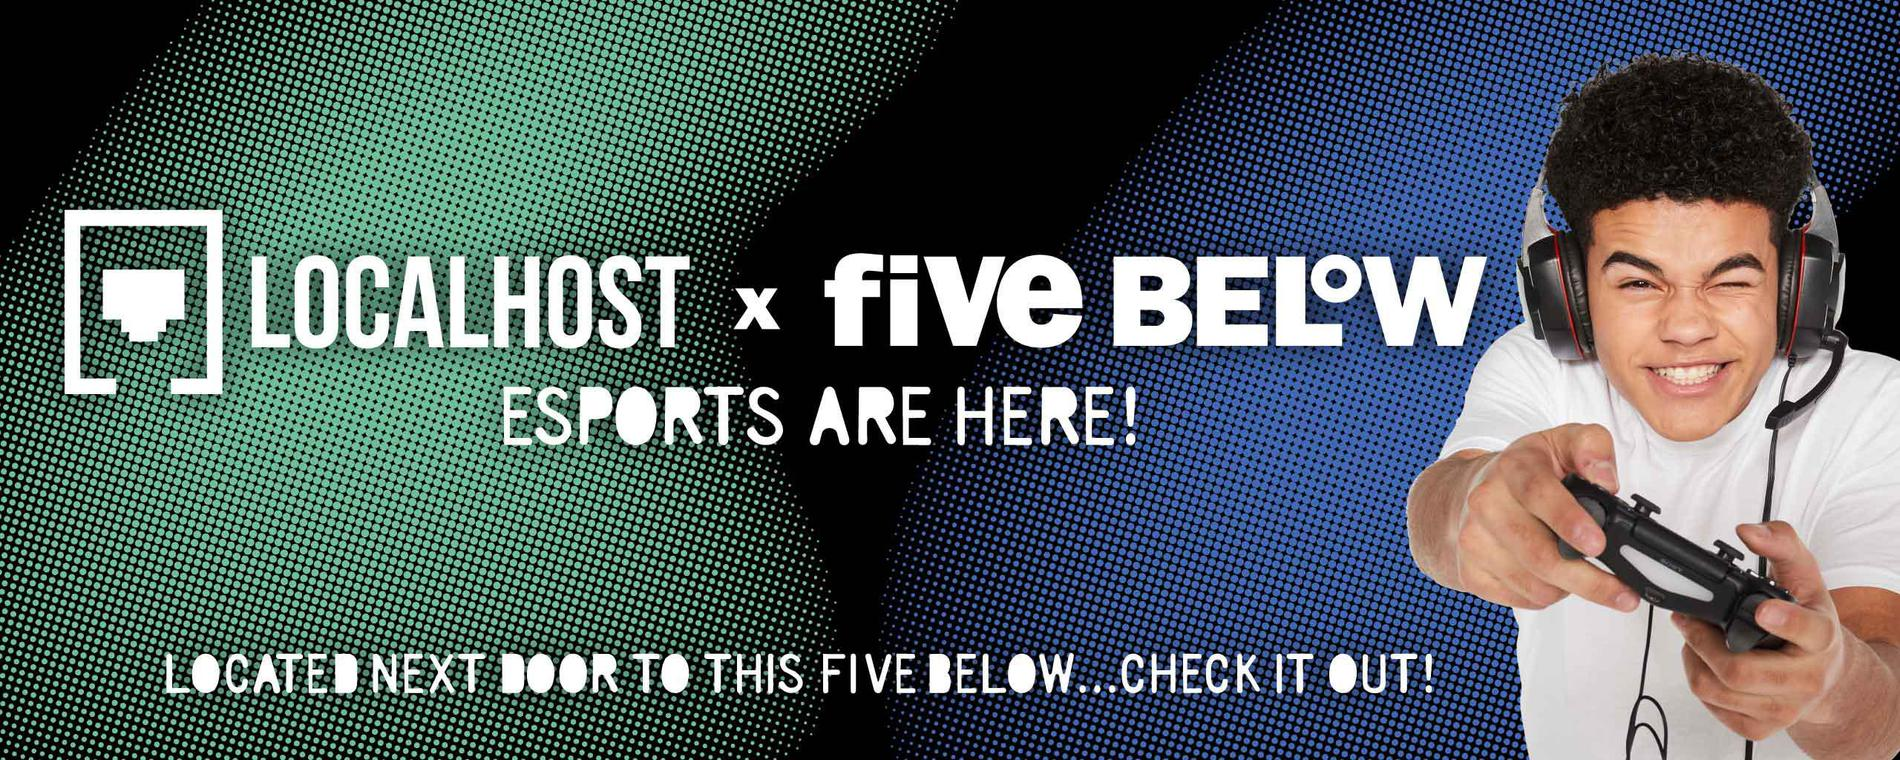 localhost + five below logos. Esports are here! Located next door to this five below...check it out!